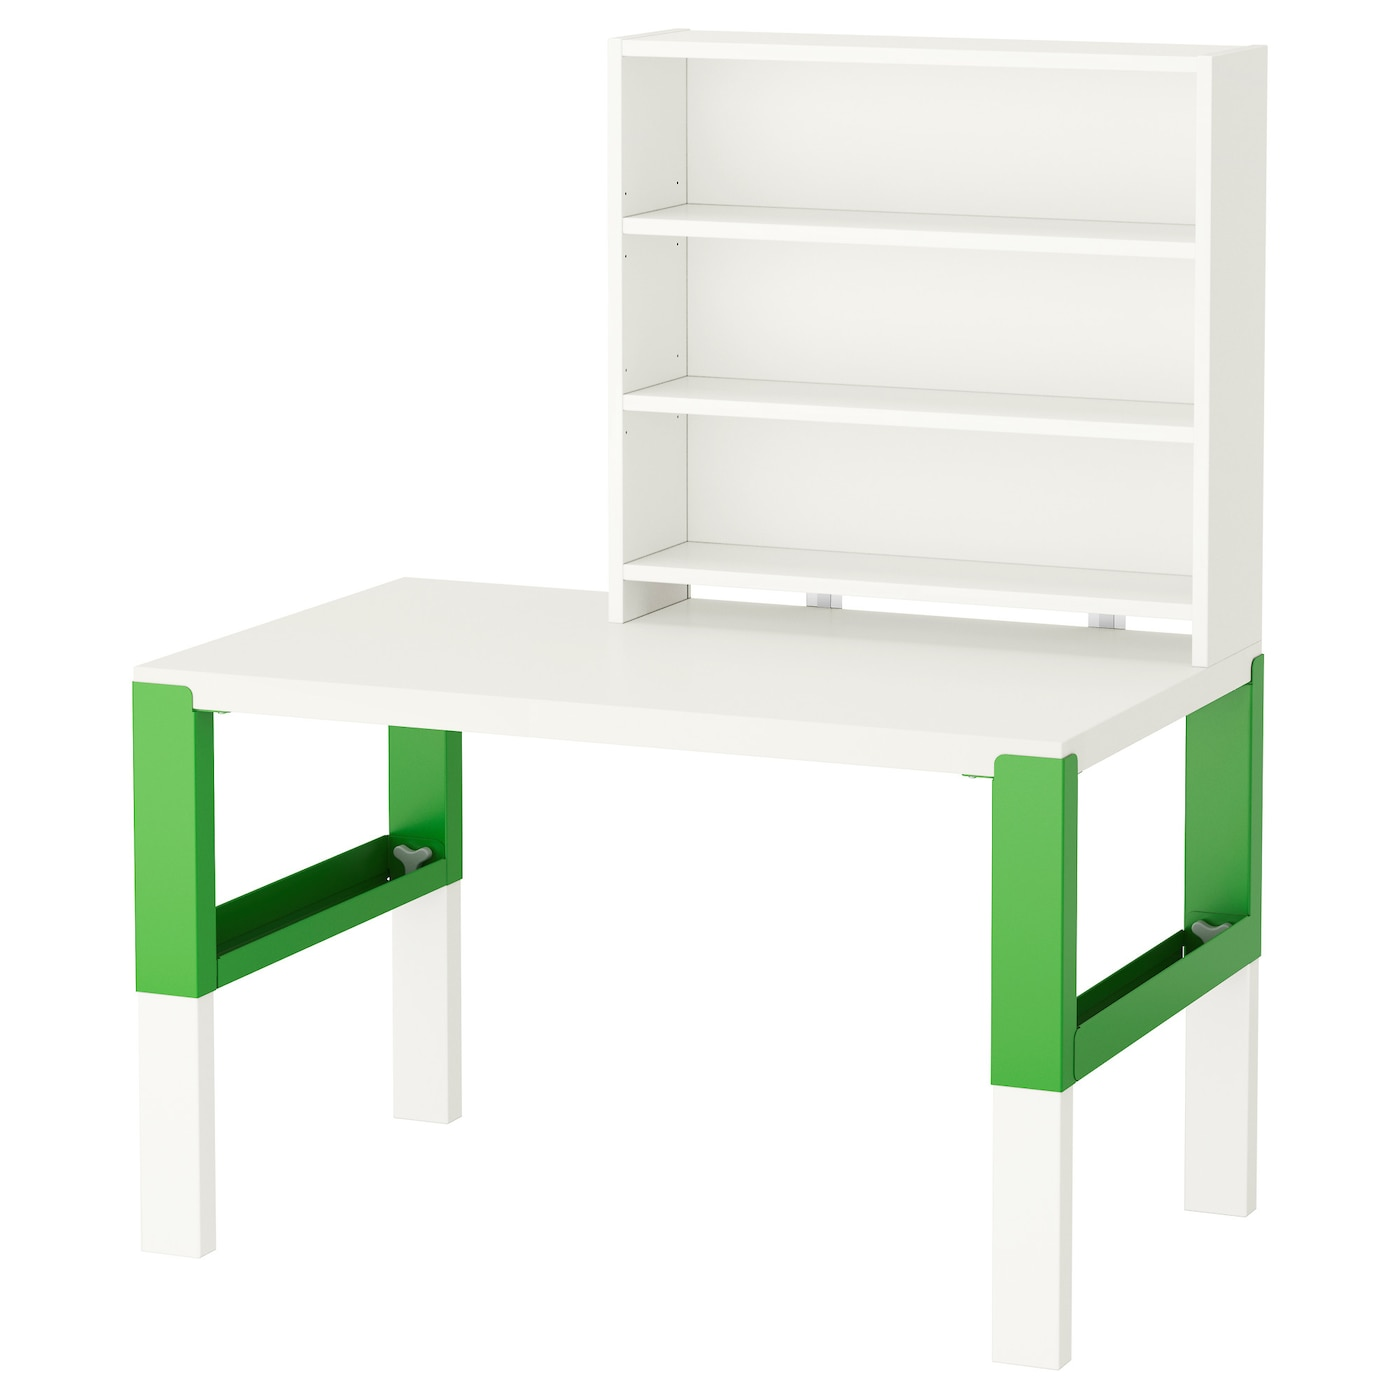 p hl desk with shelf unit white green 96 x 58 cm ikea. Black Bedroom Furniture Sets. Home Design Ideas